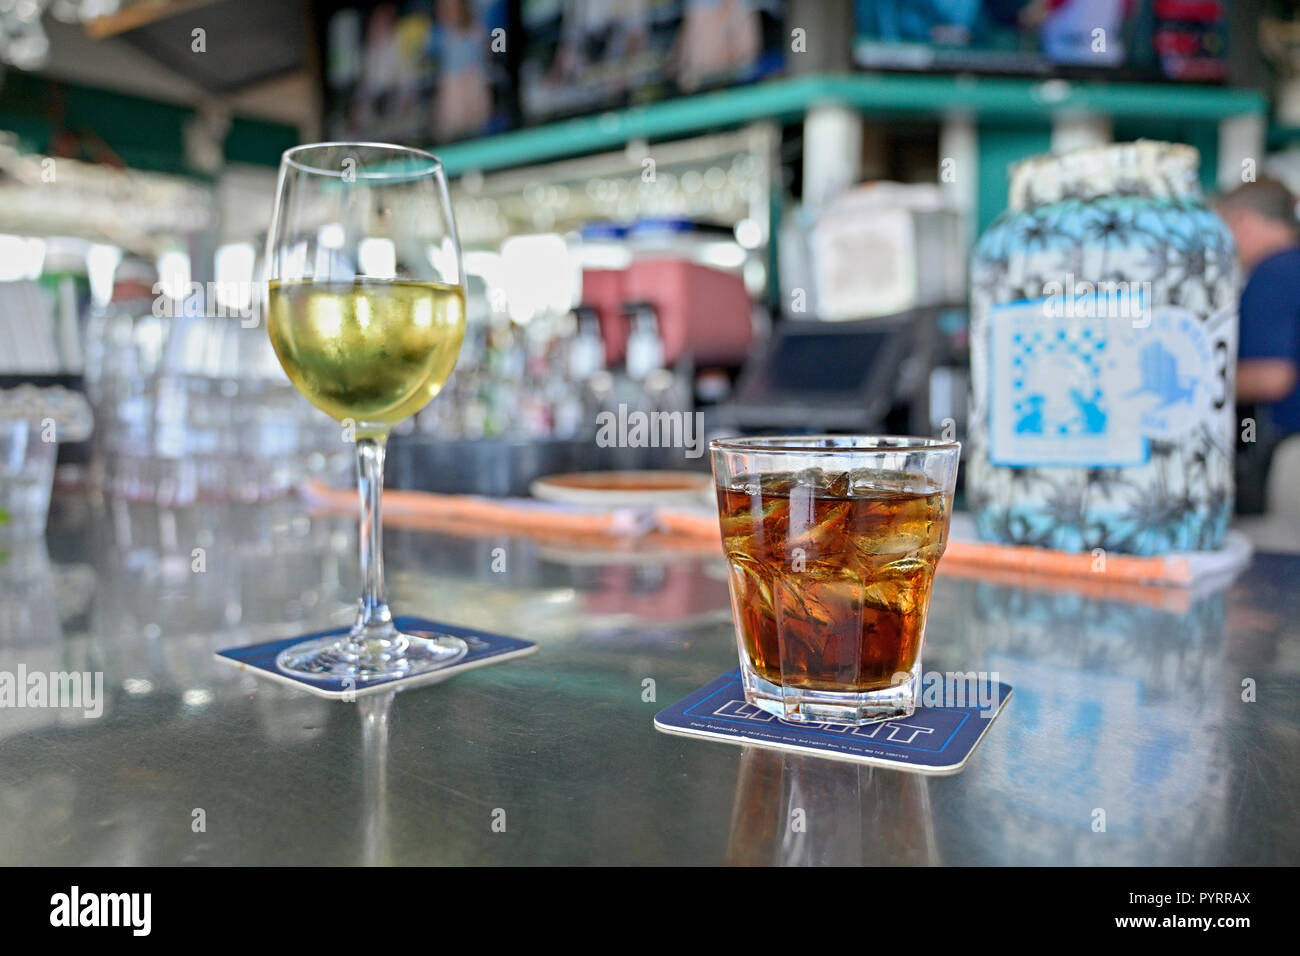 Mixed drink possibly a Bourbon and Coke or Rum and Coke along with a glass of white wine on the bar at Bud and Alley's, Seaside Florida USA. Stock Photo